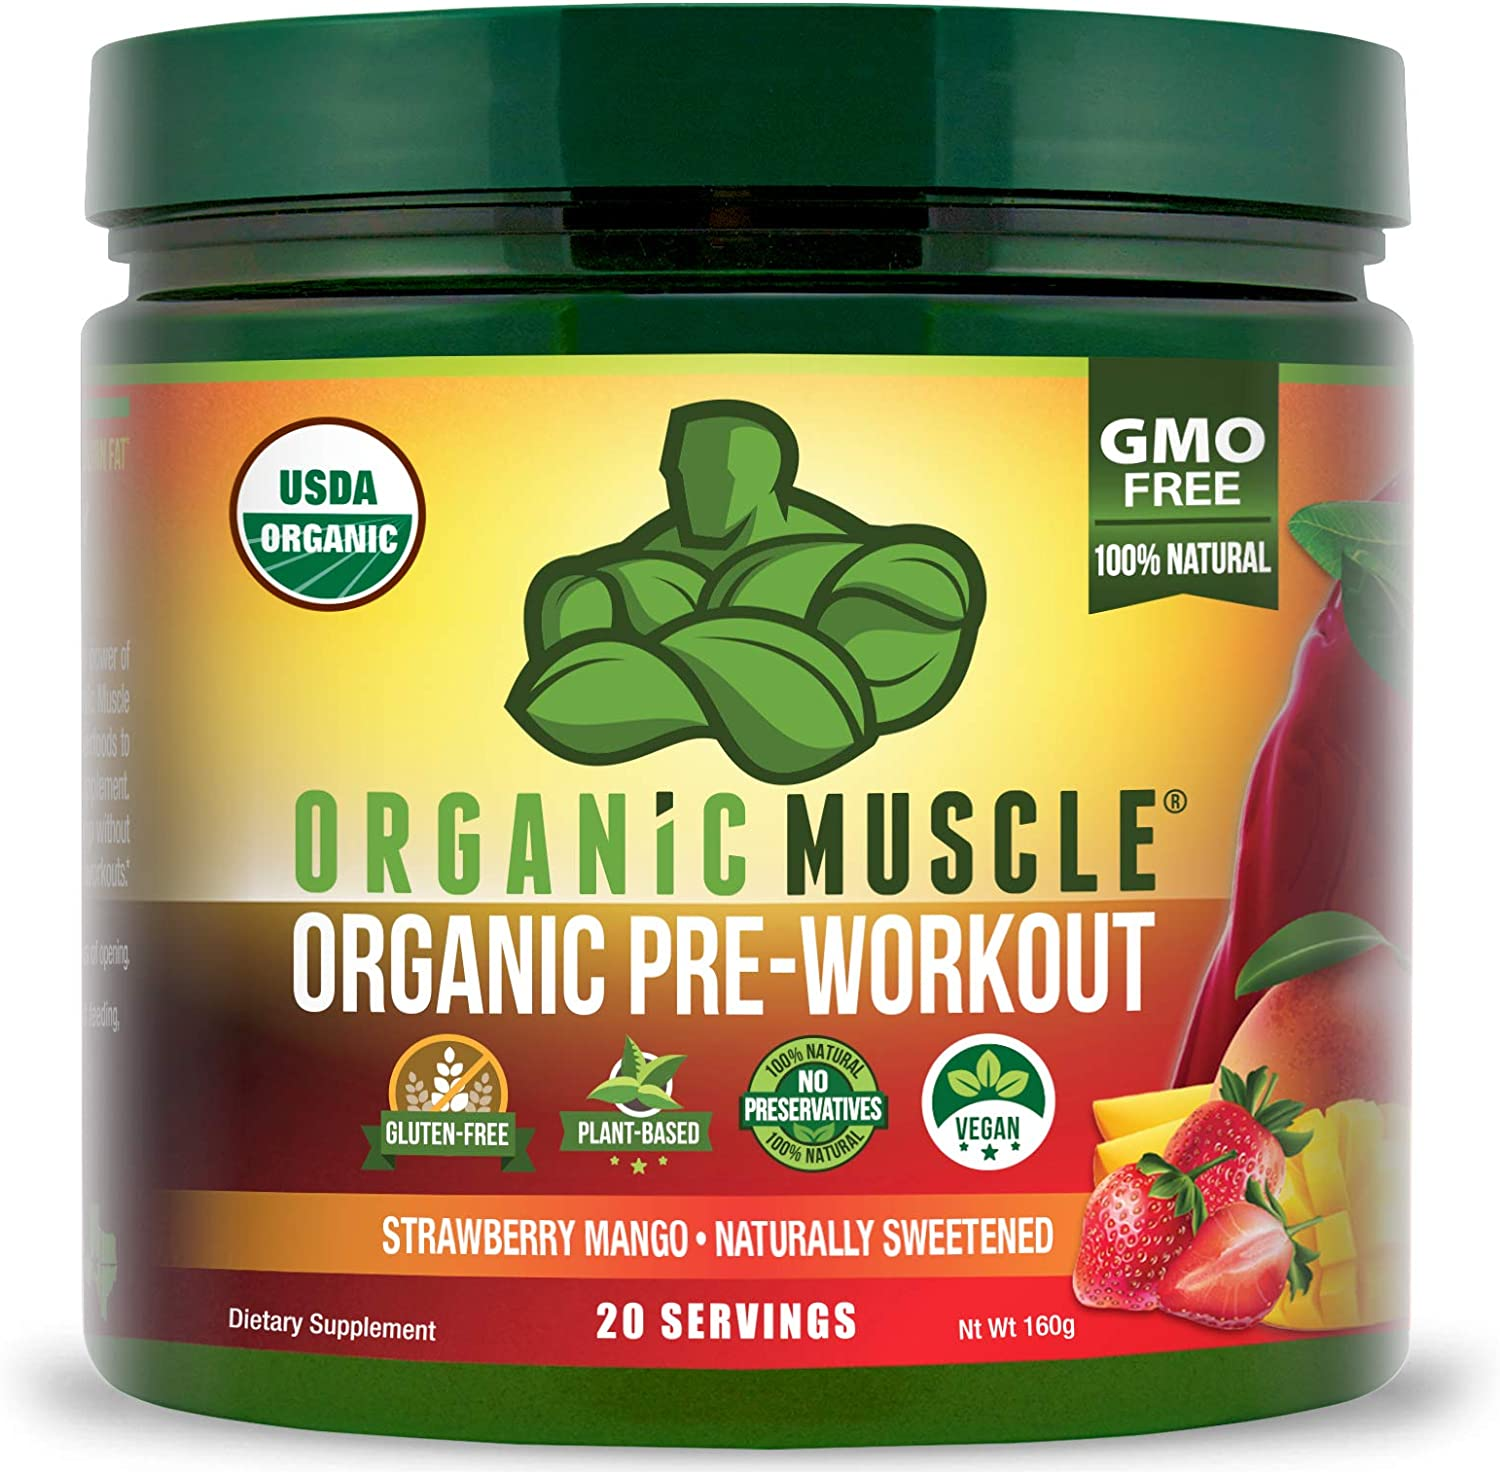 Amazon.com: Organic Muscle #1 Rated Organic Pre Workout Powder ...